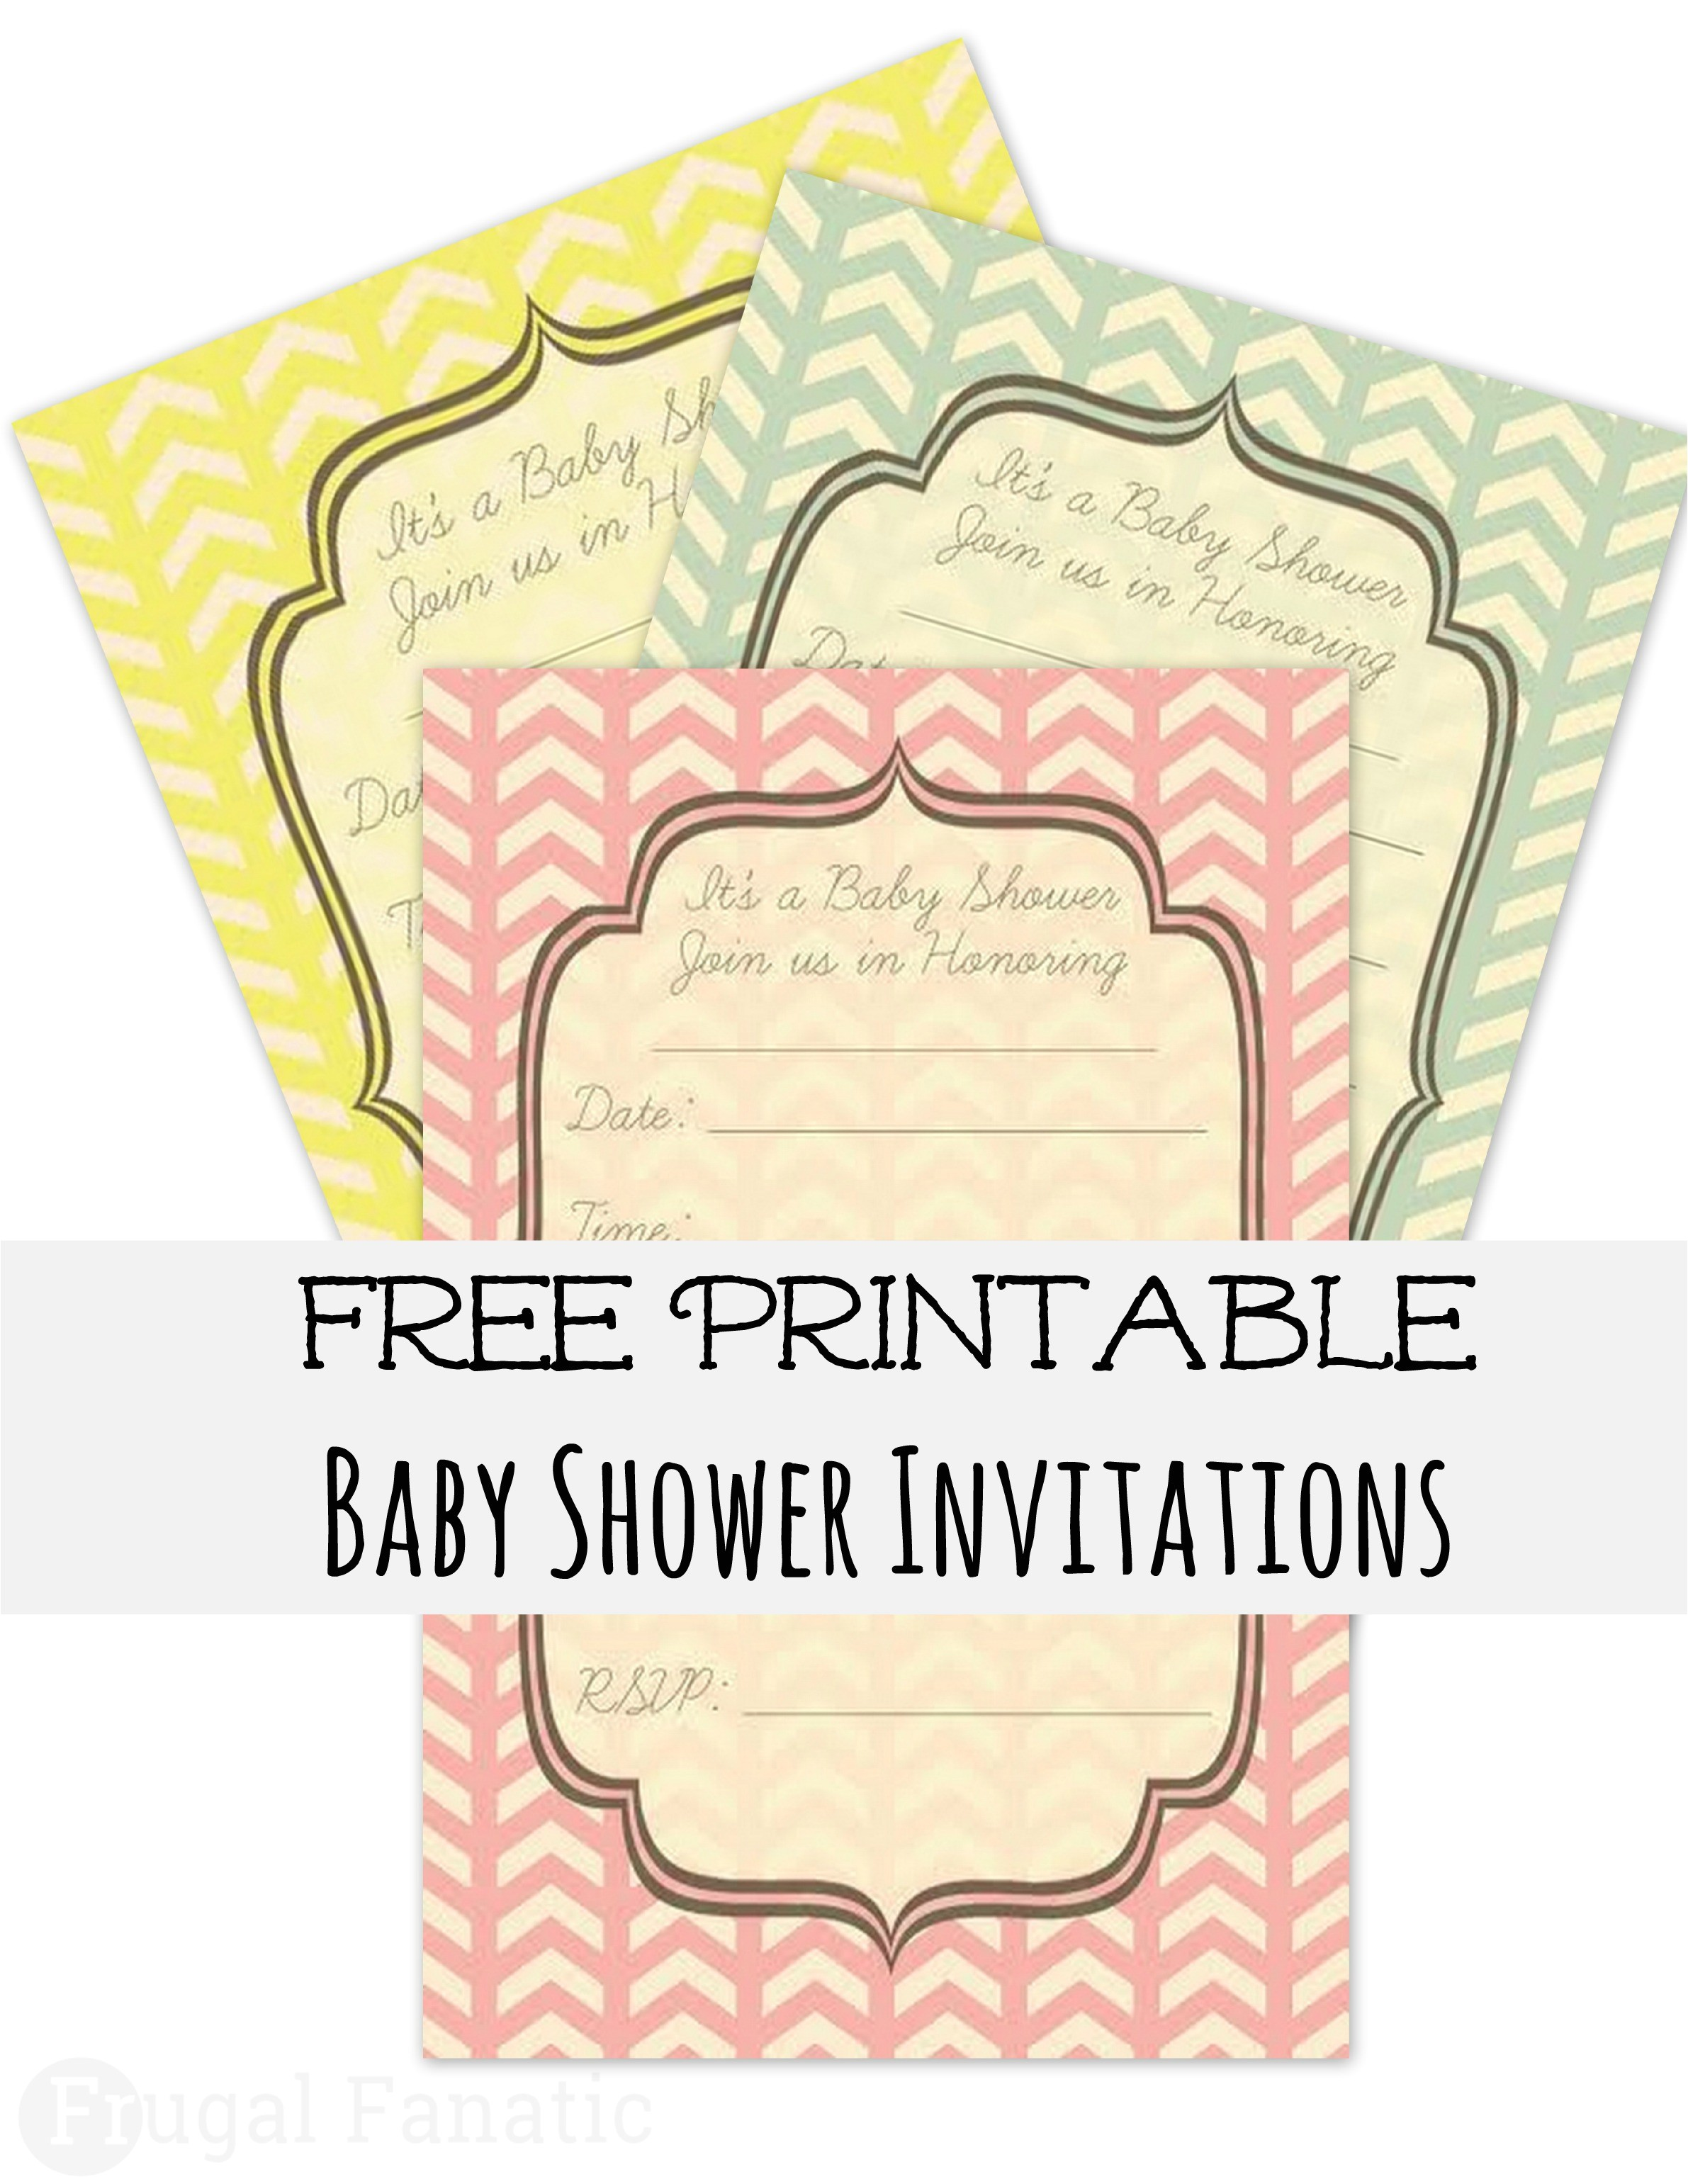 Make My Own Baby Shower Invitations Online for Free Baby Shower Invitations Create Your Own Free